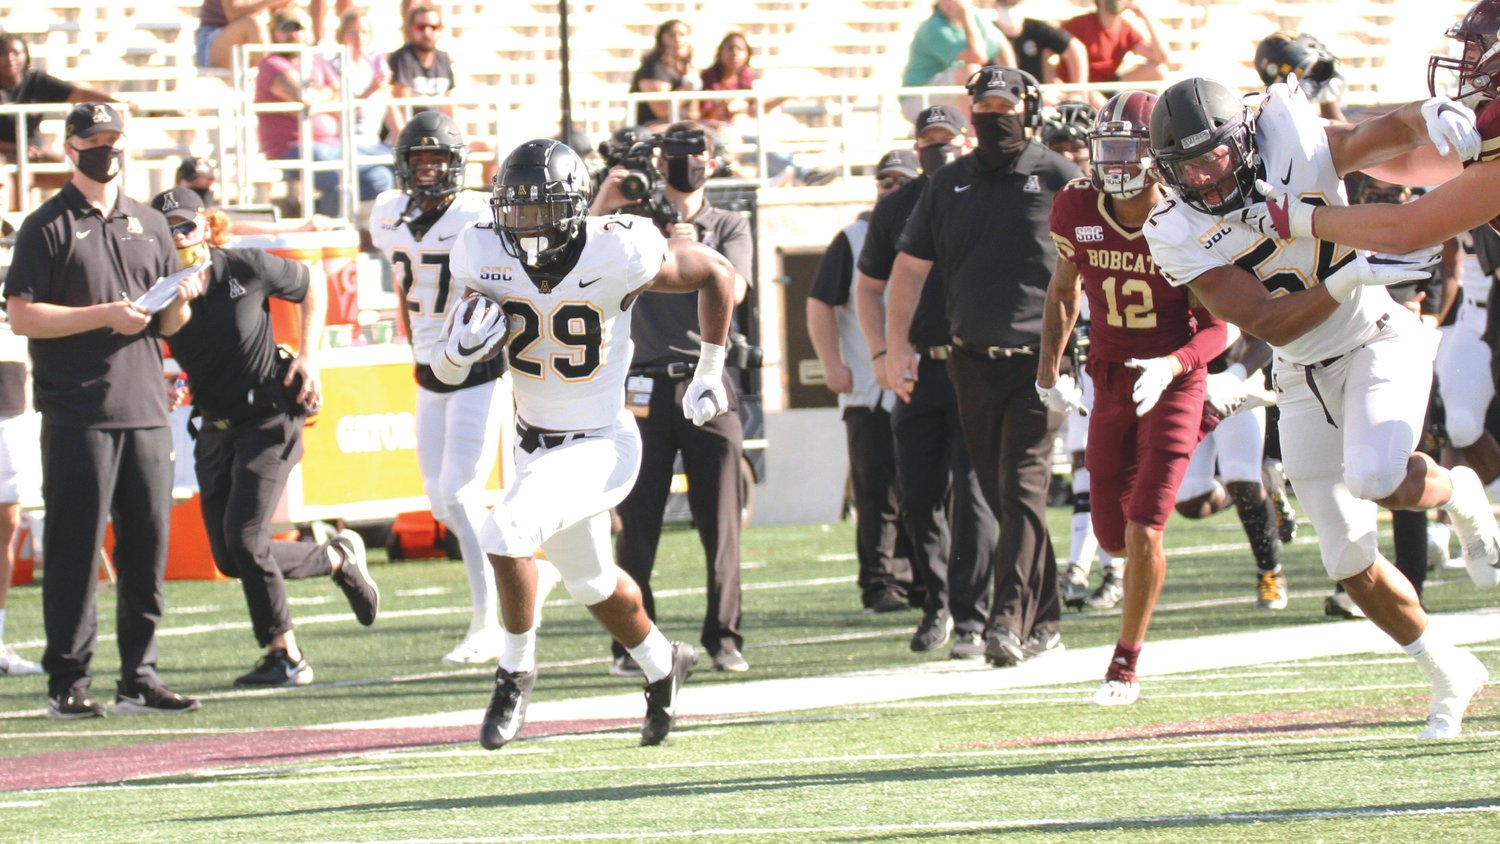 Harrington's pick-six against Texas State two weekends ago was his first career touchdown at the college level.